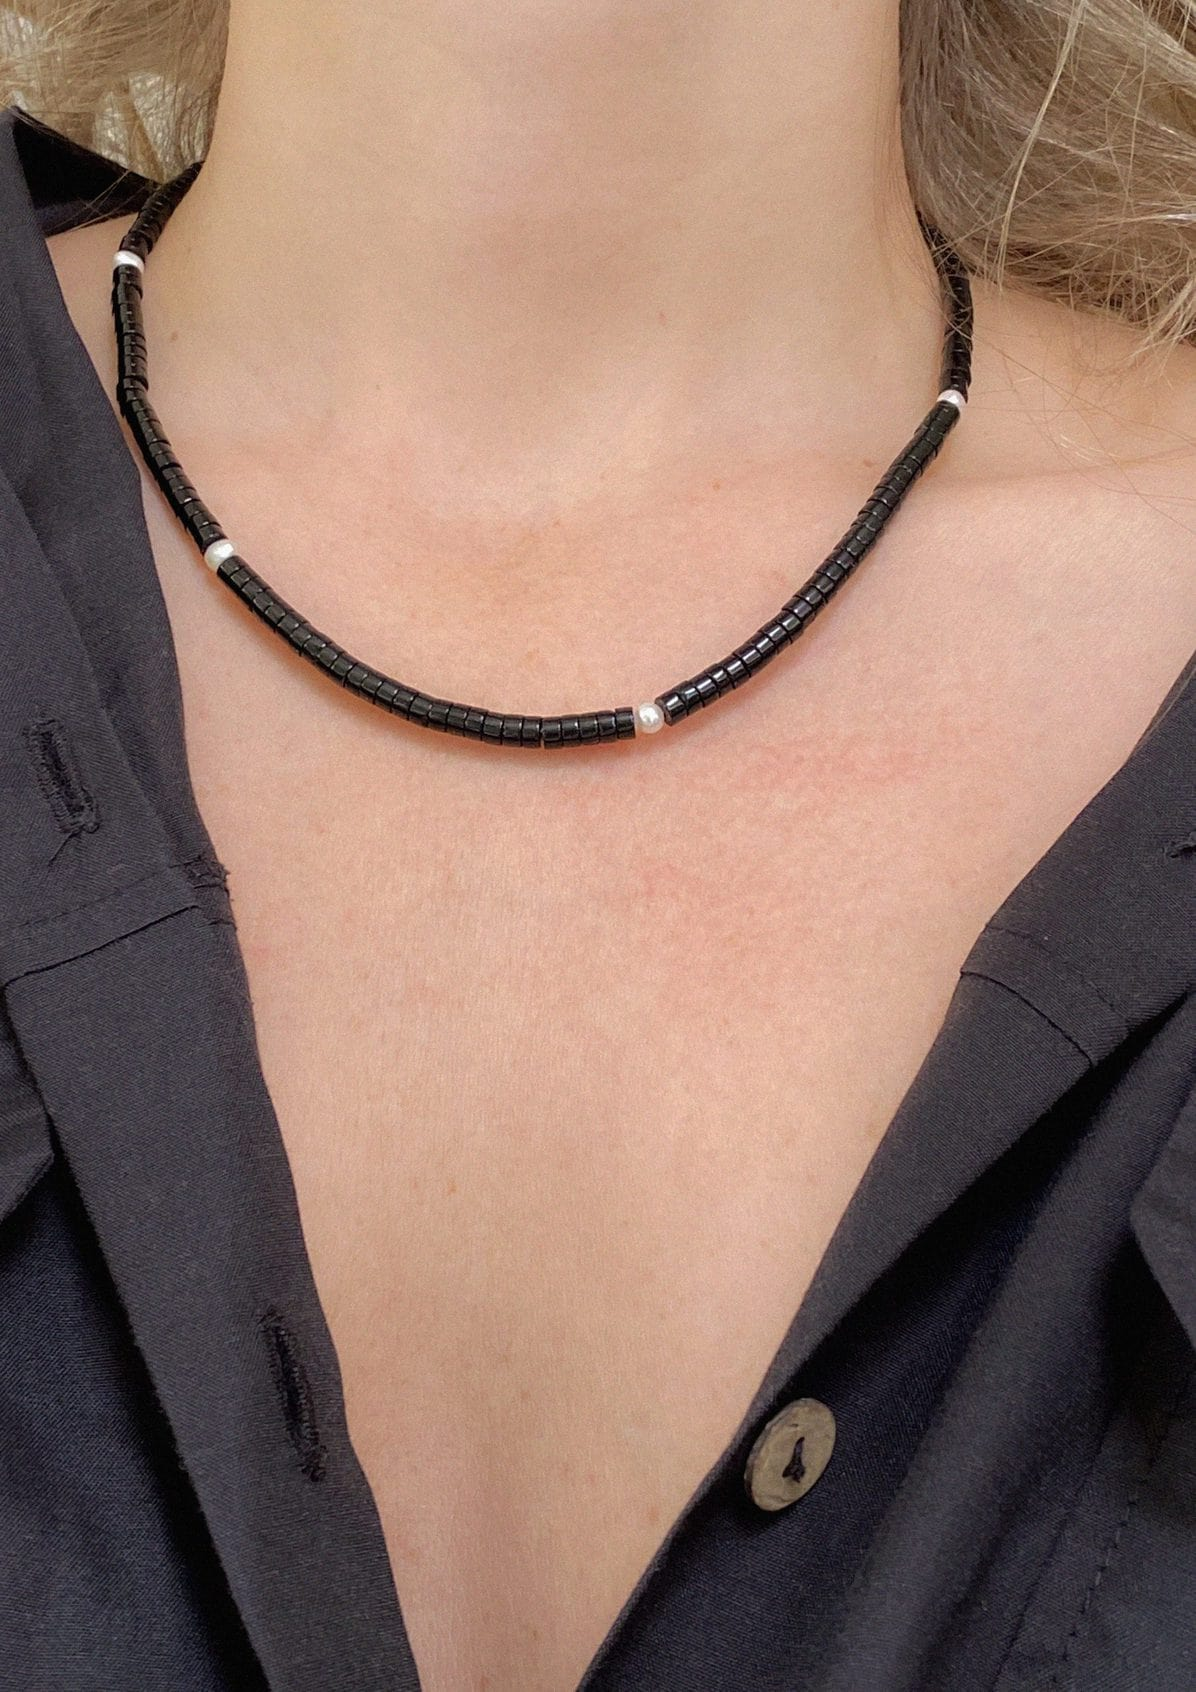 BREAKFAST AT TIFFANY'S NECKLACE - HERMINA ATHENS X STYLELOVE COLLECTION